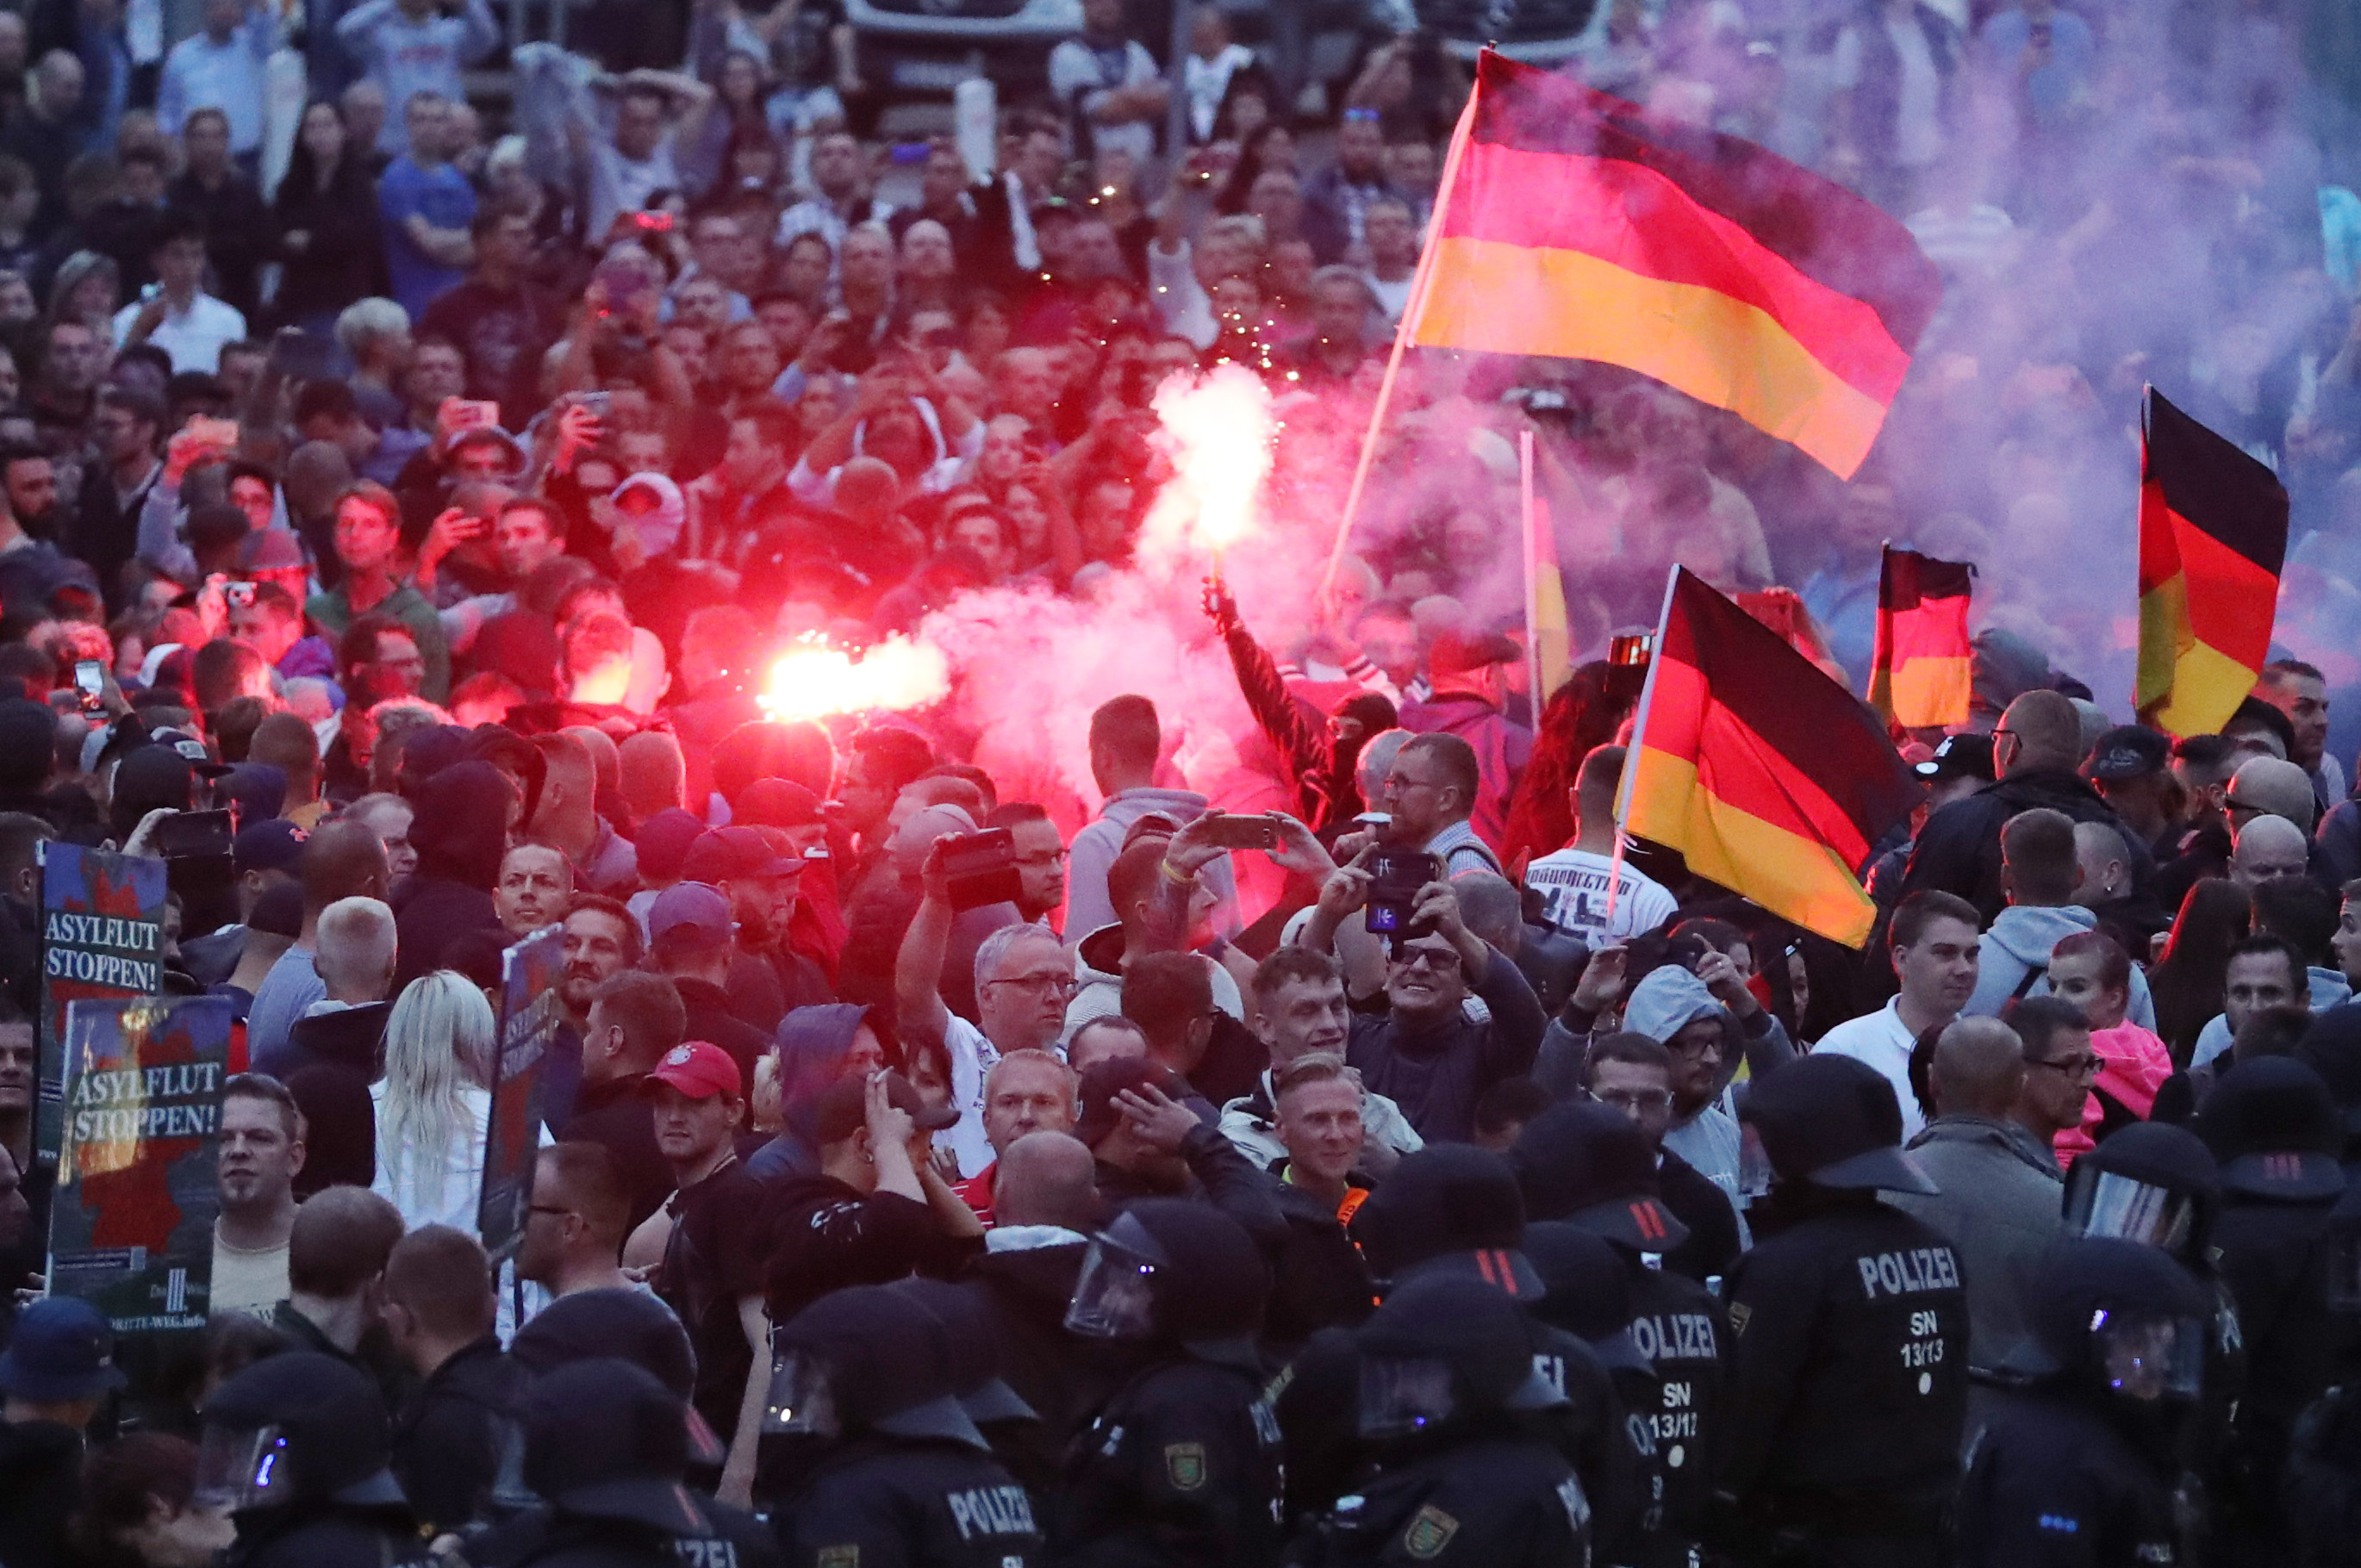 Right-wing demonstrators ignite pyrotechnics and wave German flags in Chemnitz, at a protest against migration following the stabbing of a local man, over which an Iraqi and a Syrian were arrested.